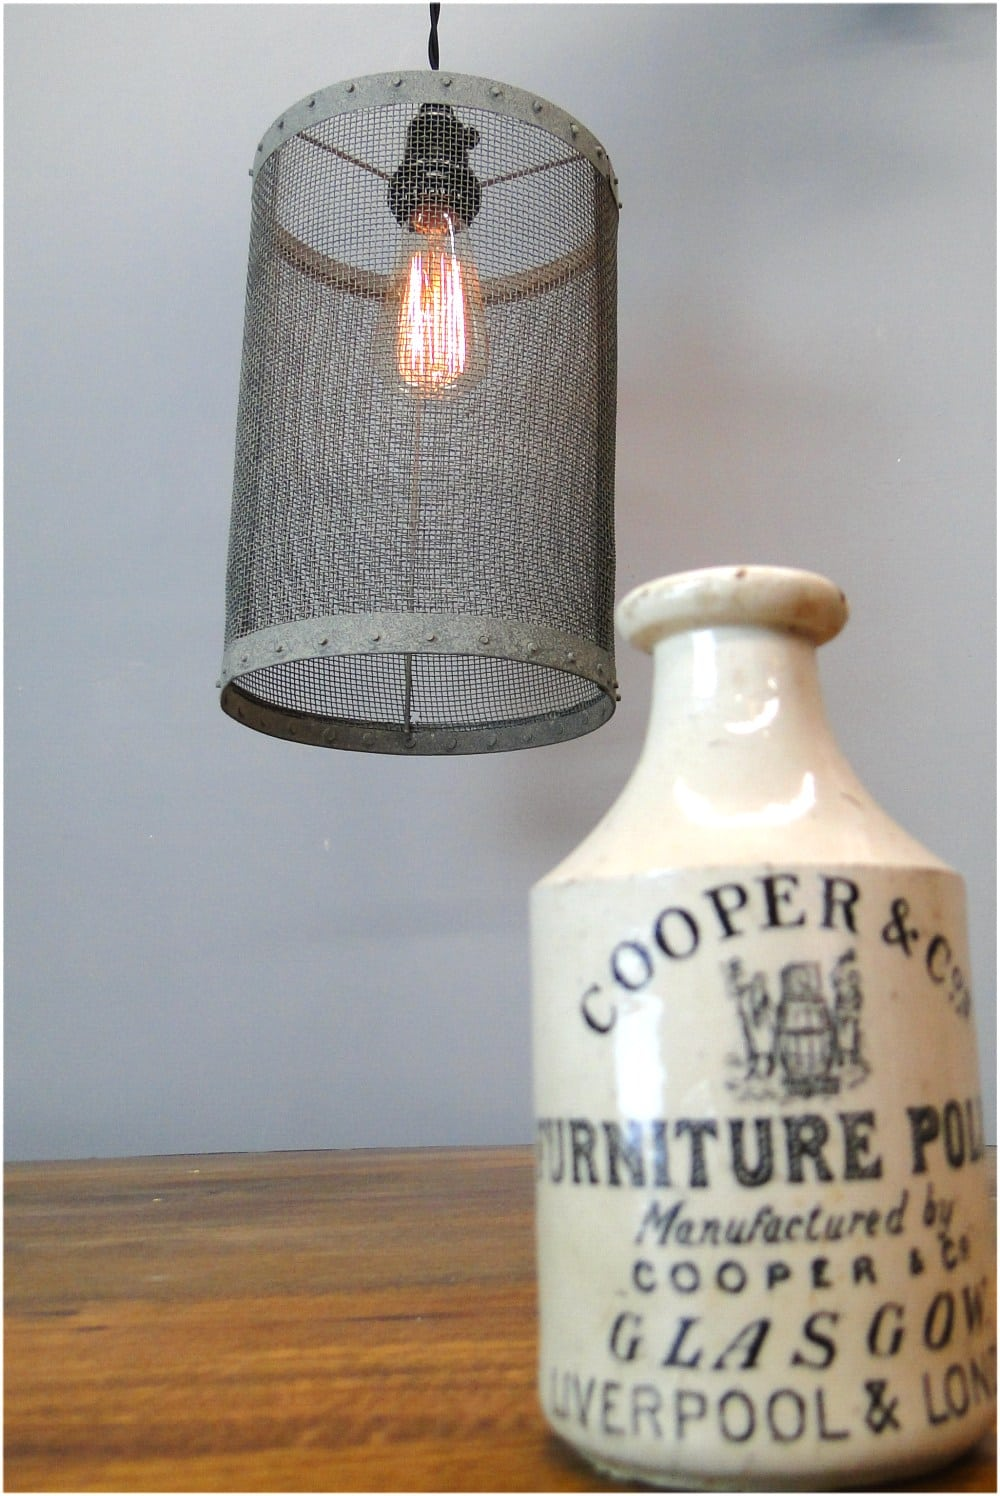 Mesh Wire Barrel Pendant Light Fixture Aged Galvanized Look Old Wiring A New To Fashioned Style Round The Kings Bay